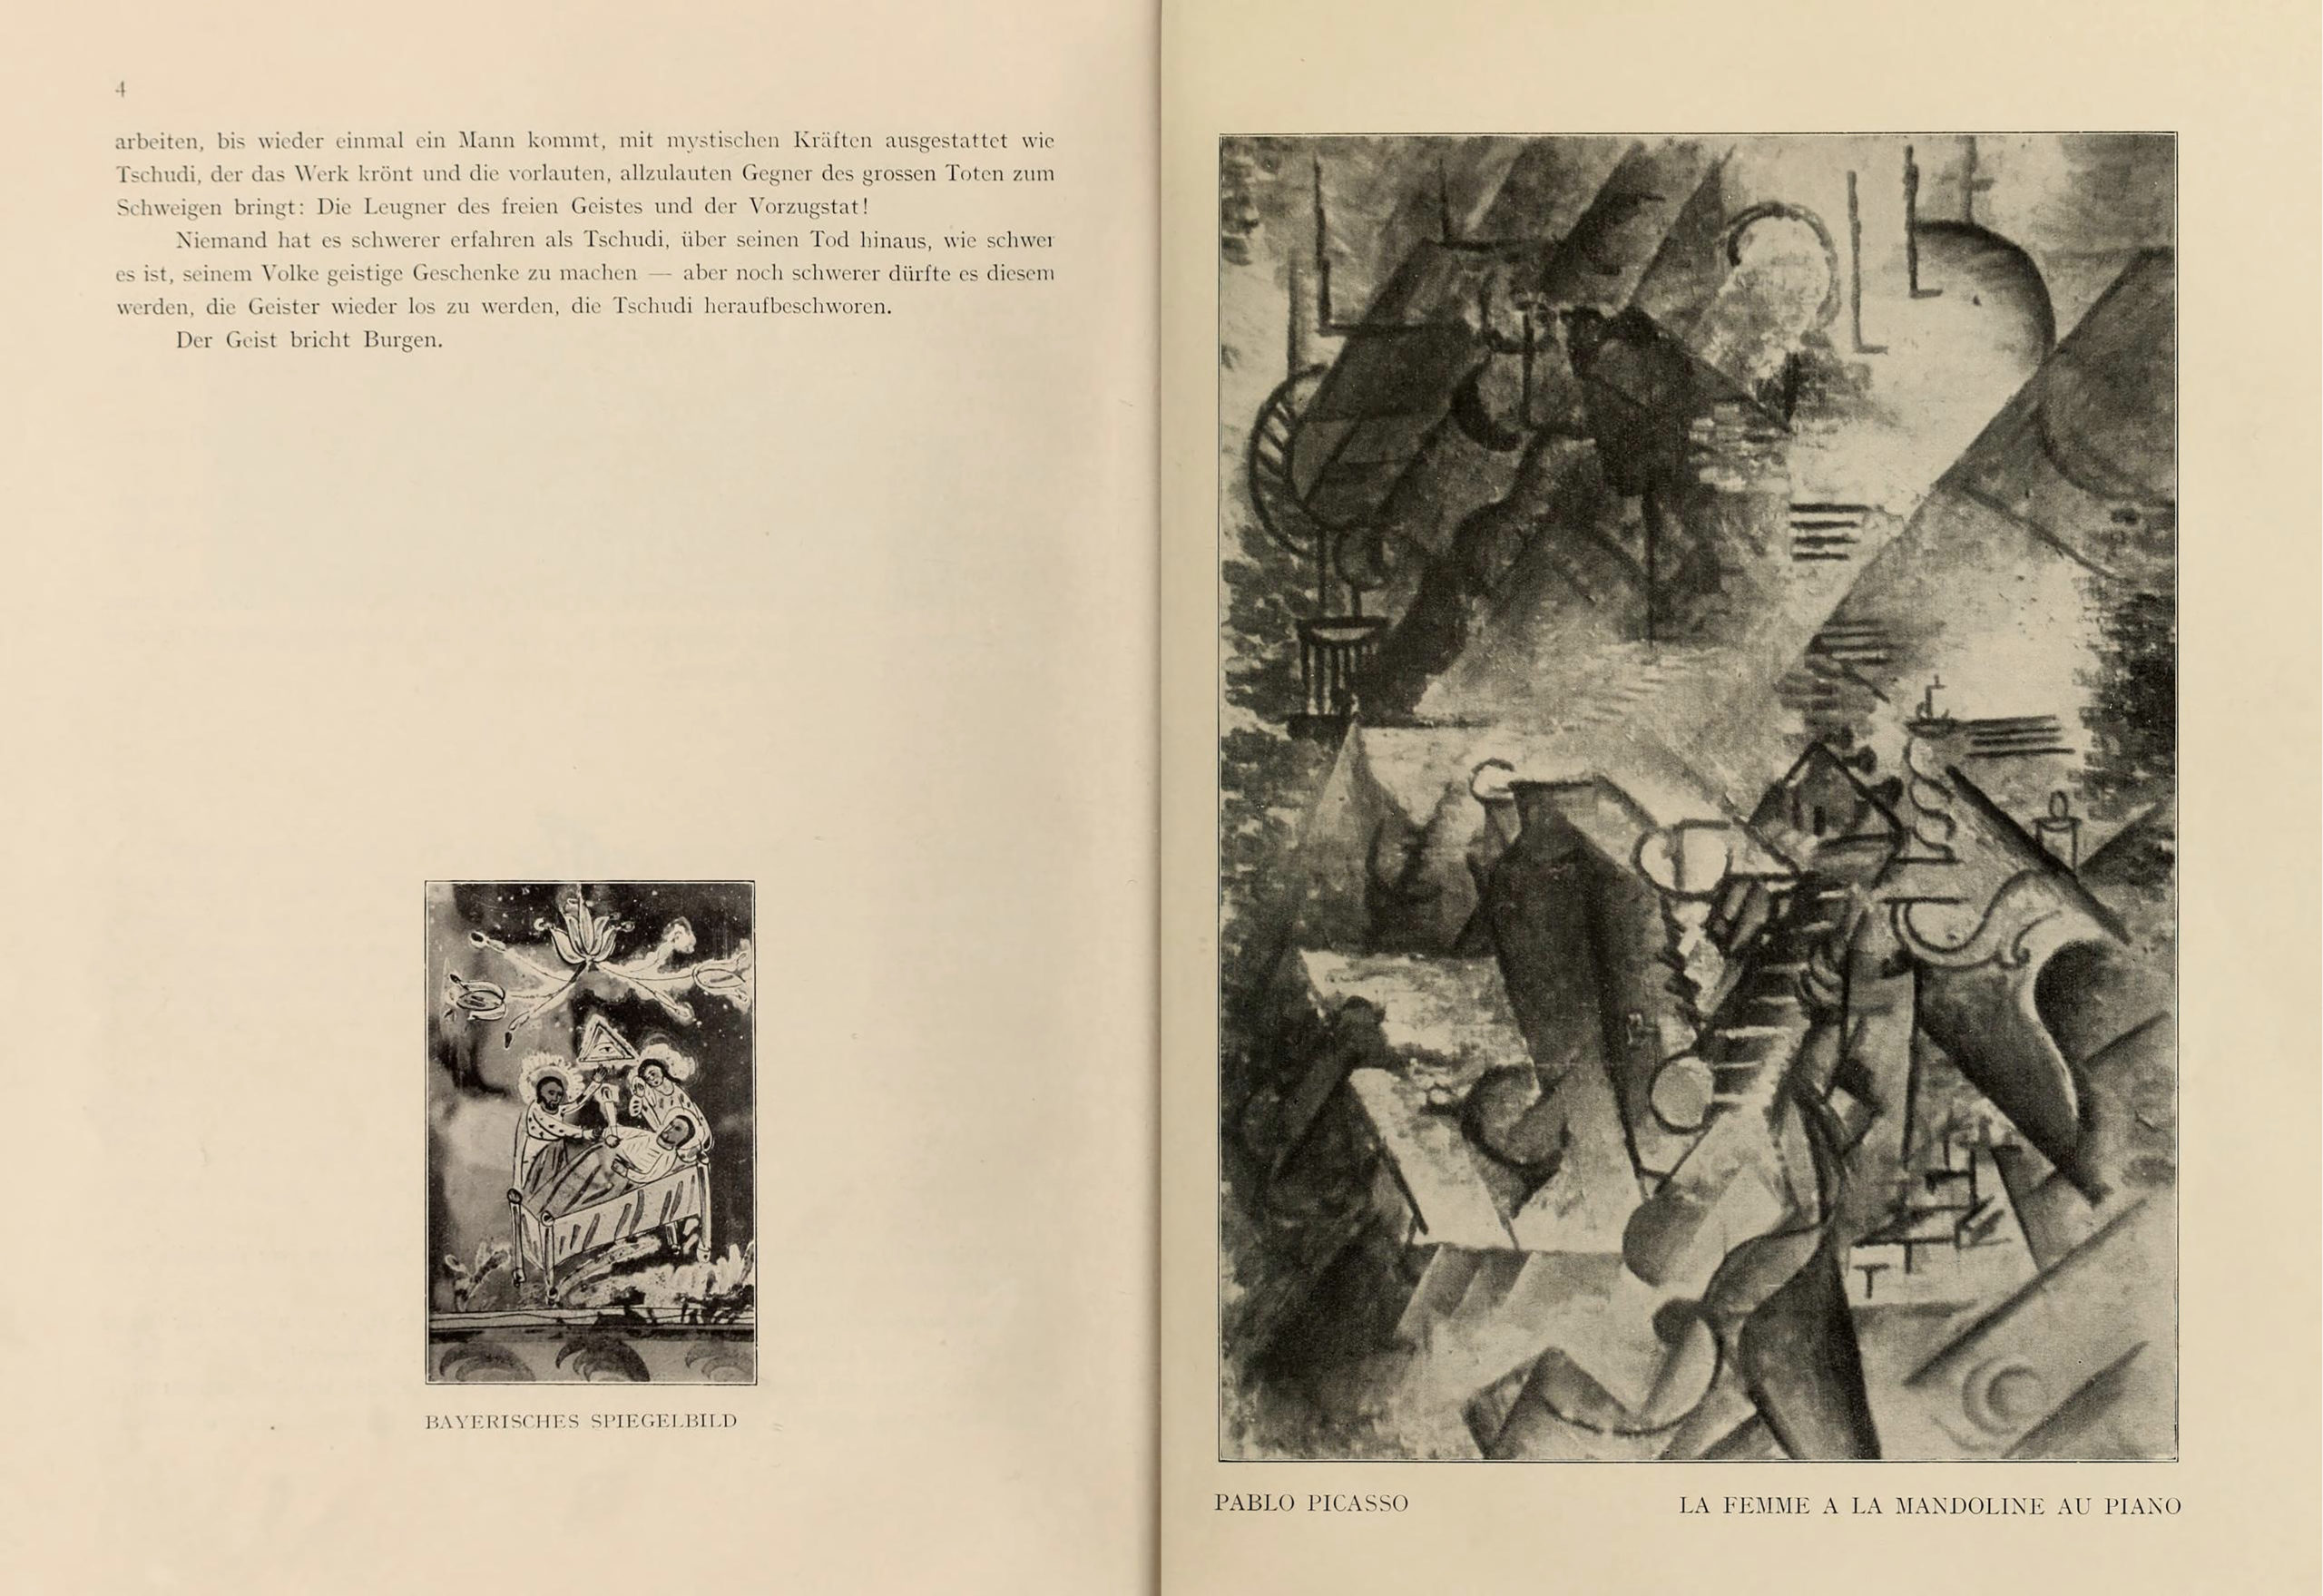 Blaue Reiter pages with Bavarian glass painting and Pablo Picasso's Woman with Guitar by the Piano, pp. 4-5